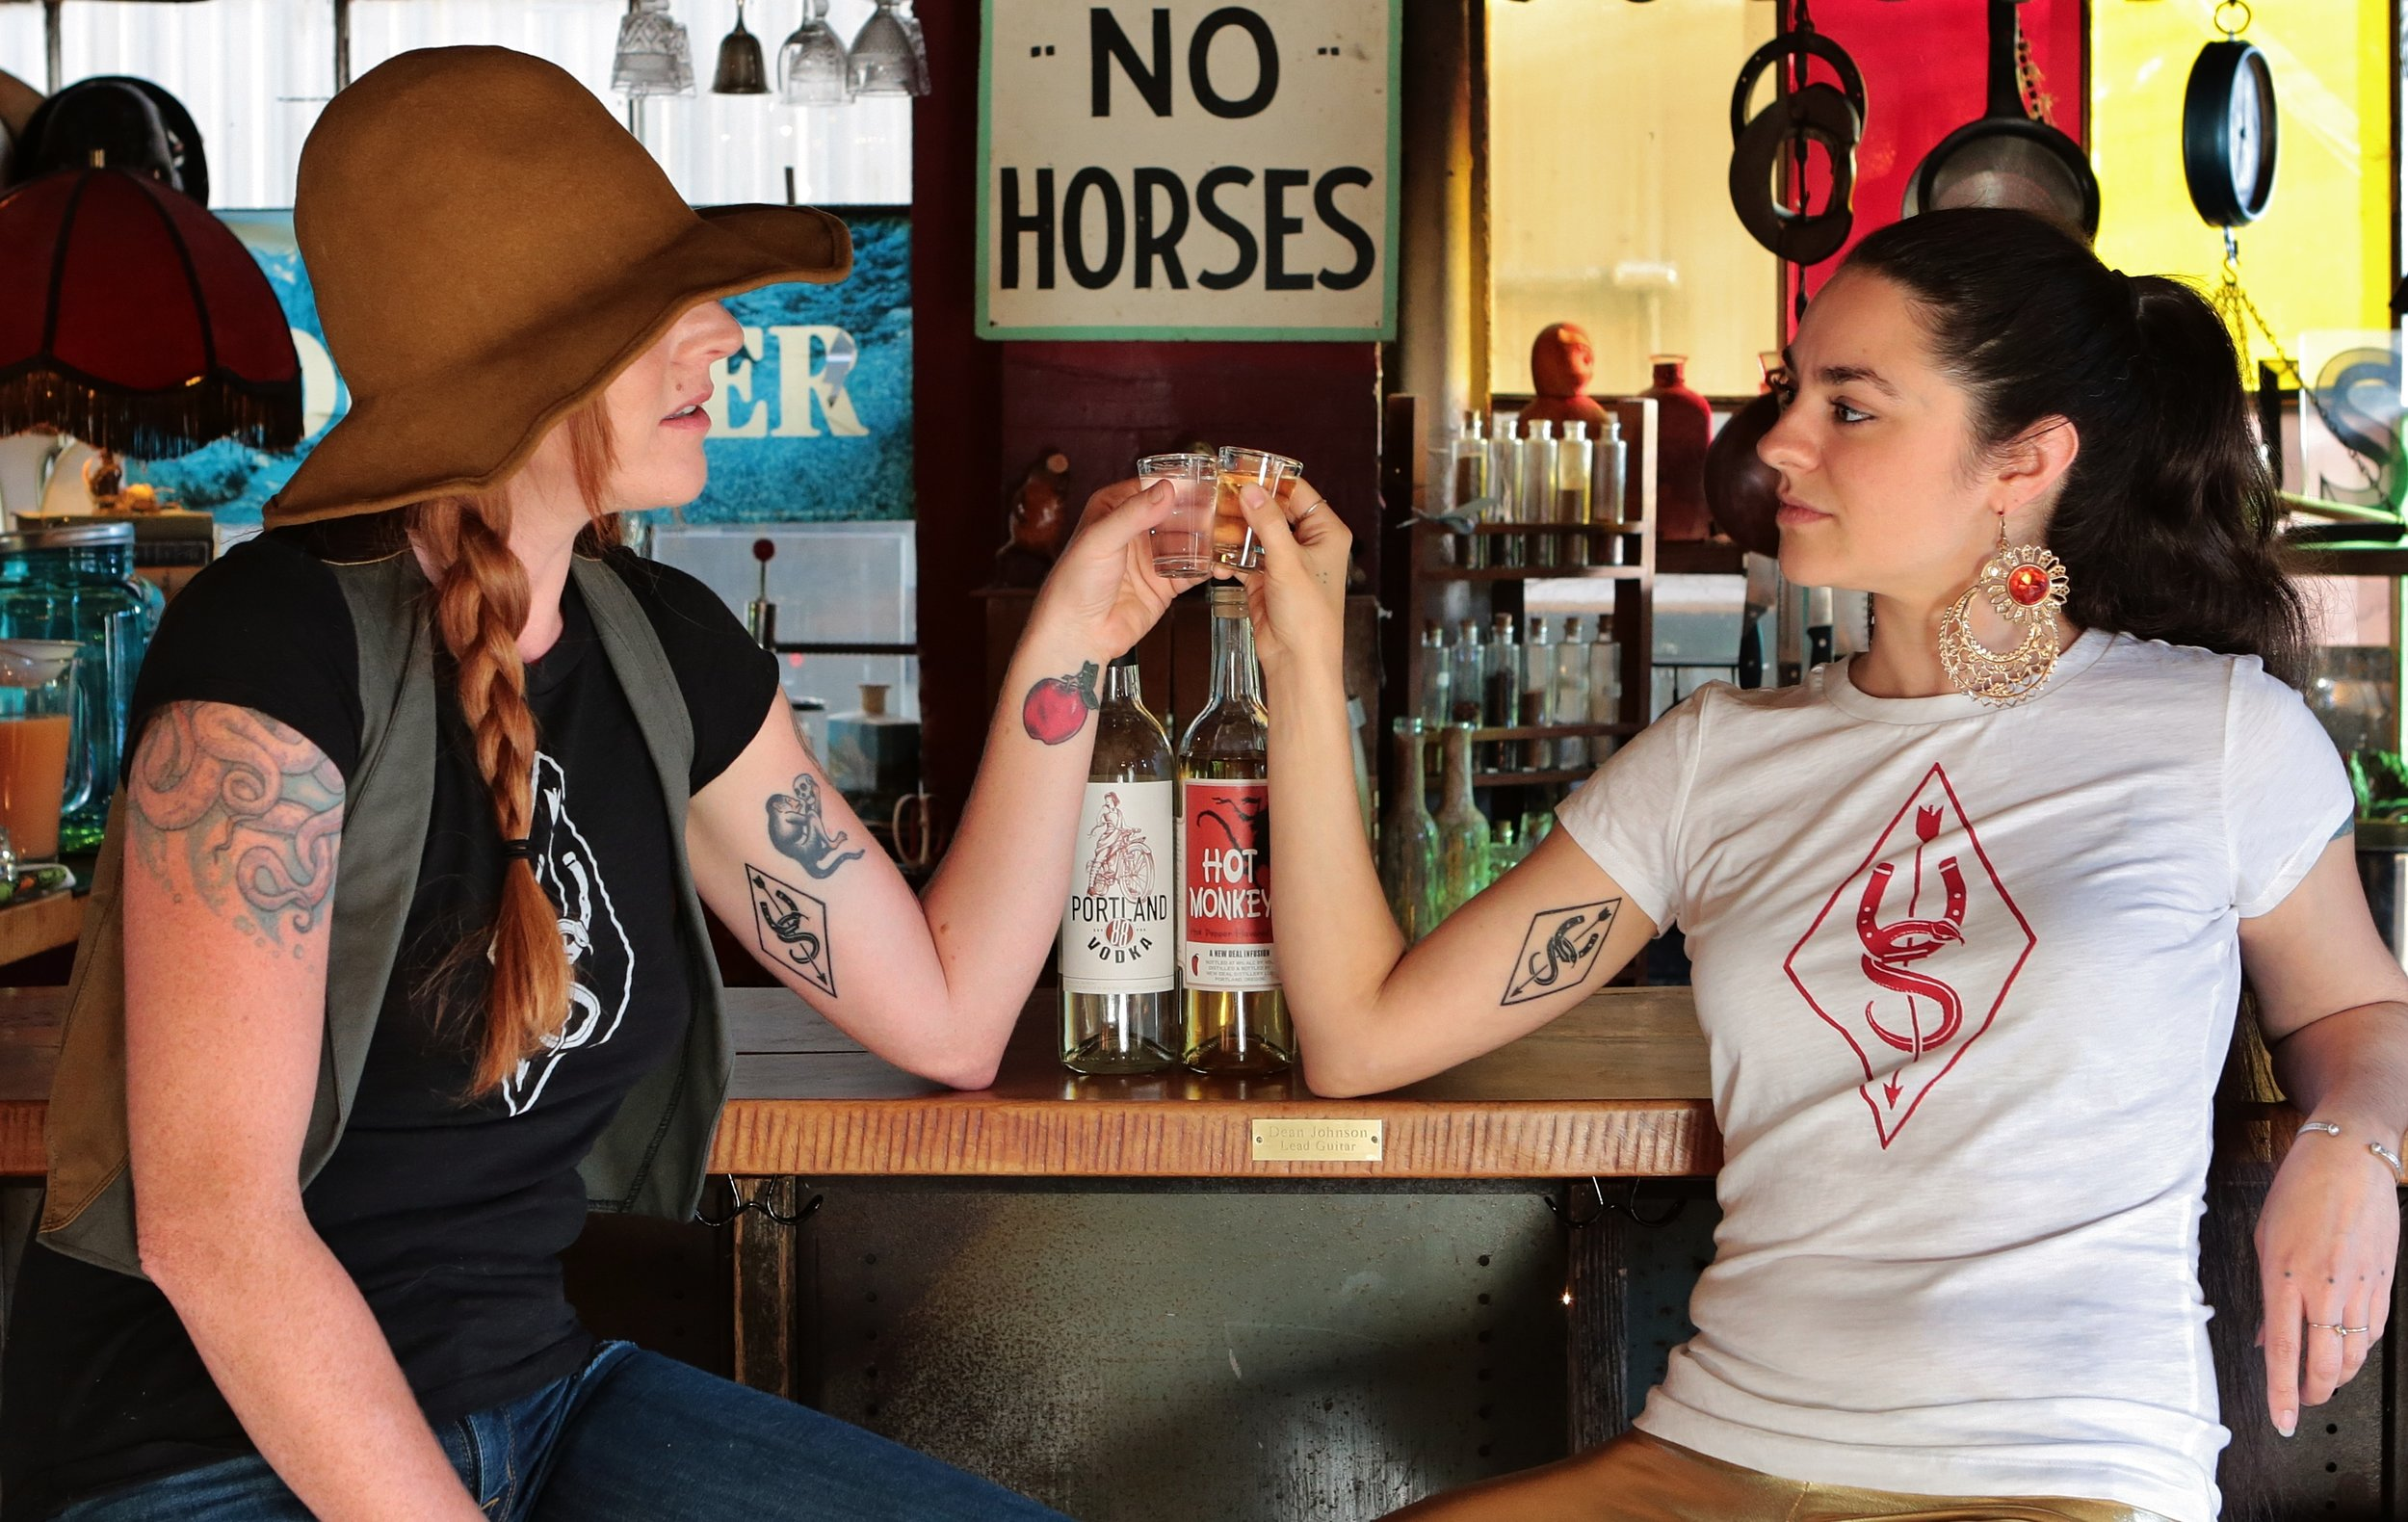 Portland Liquor photo shoot at Underwood Stables showing t-shirts and tattoos of my logo